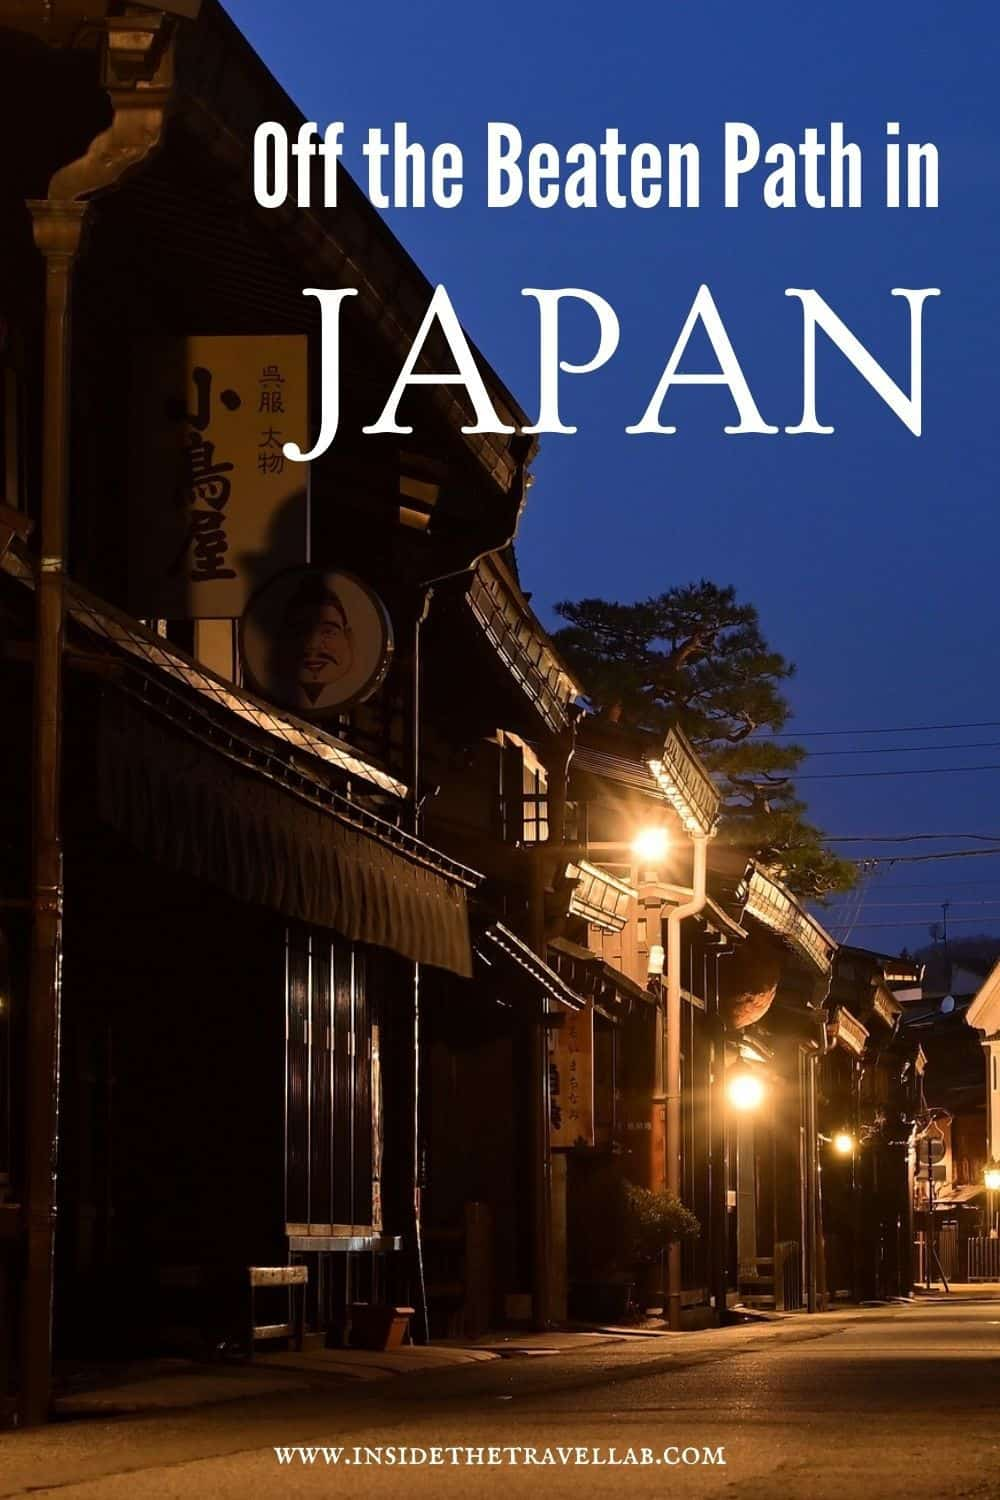 Japan Travel Destinations Guide - Off the beaten path in Japan